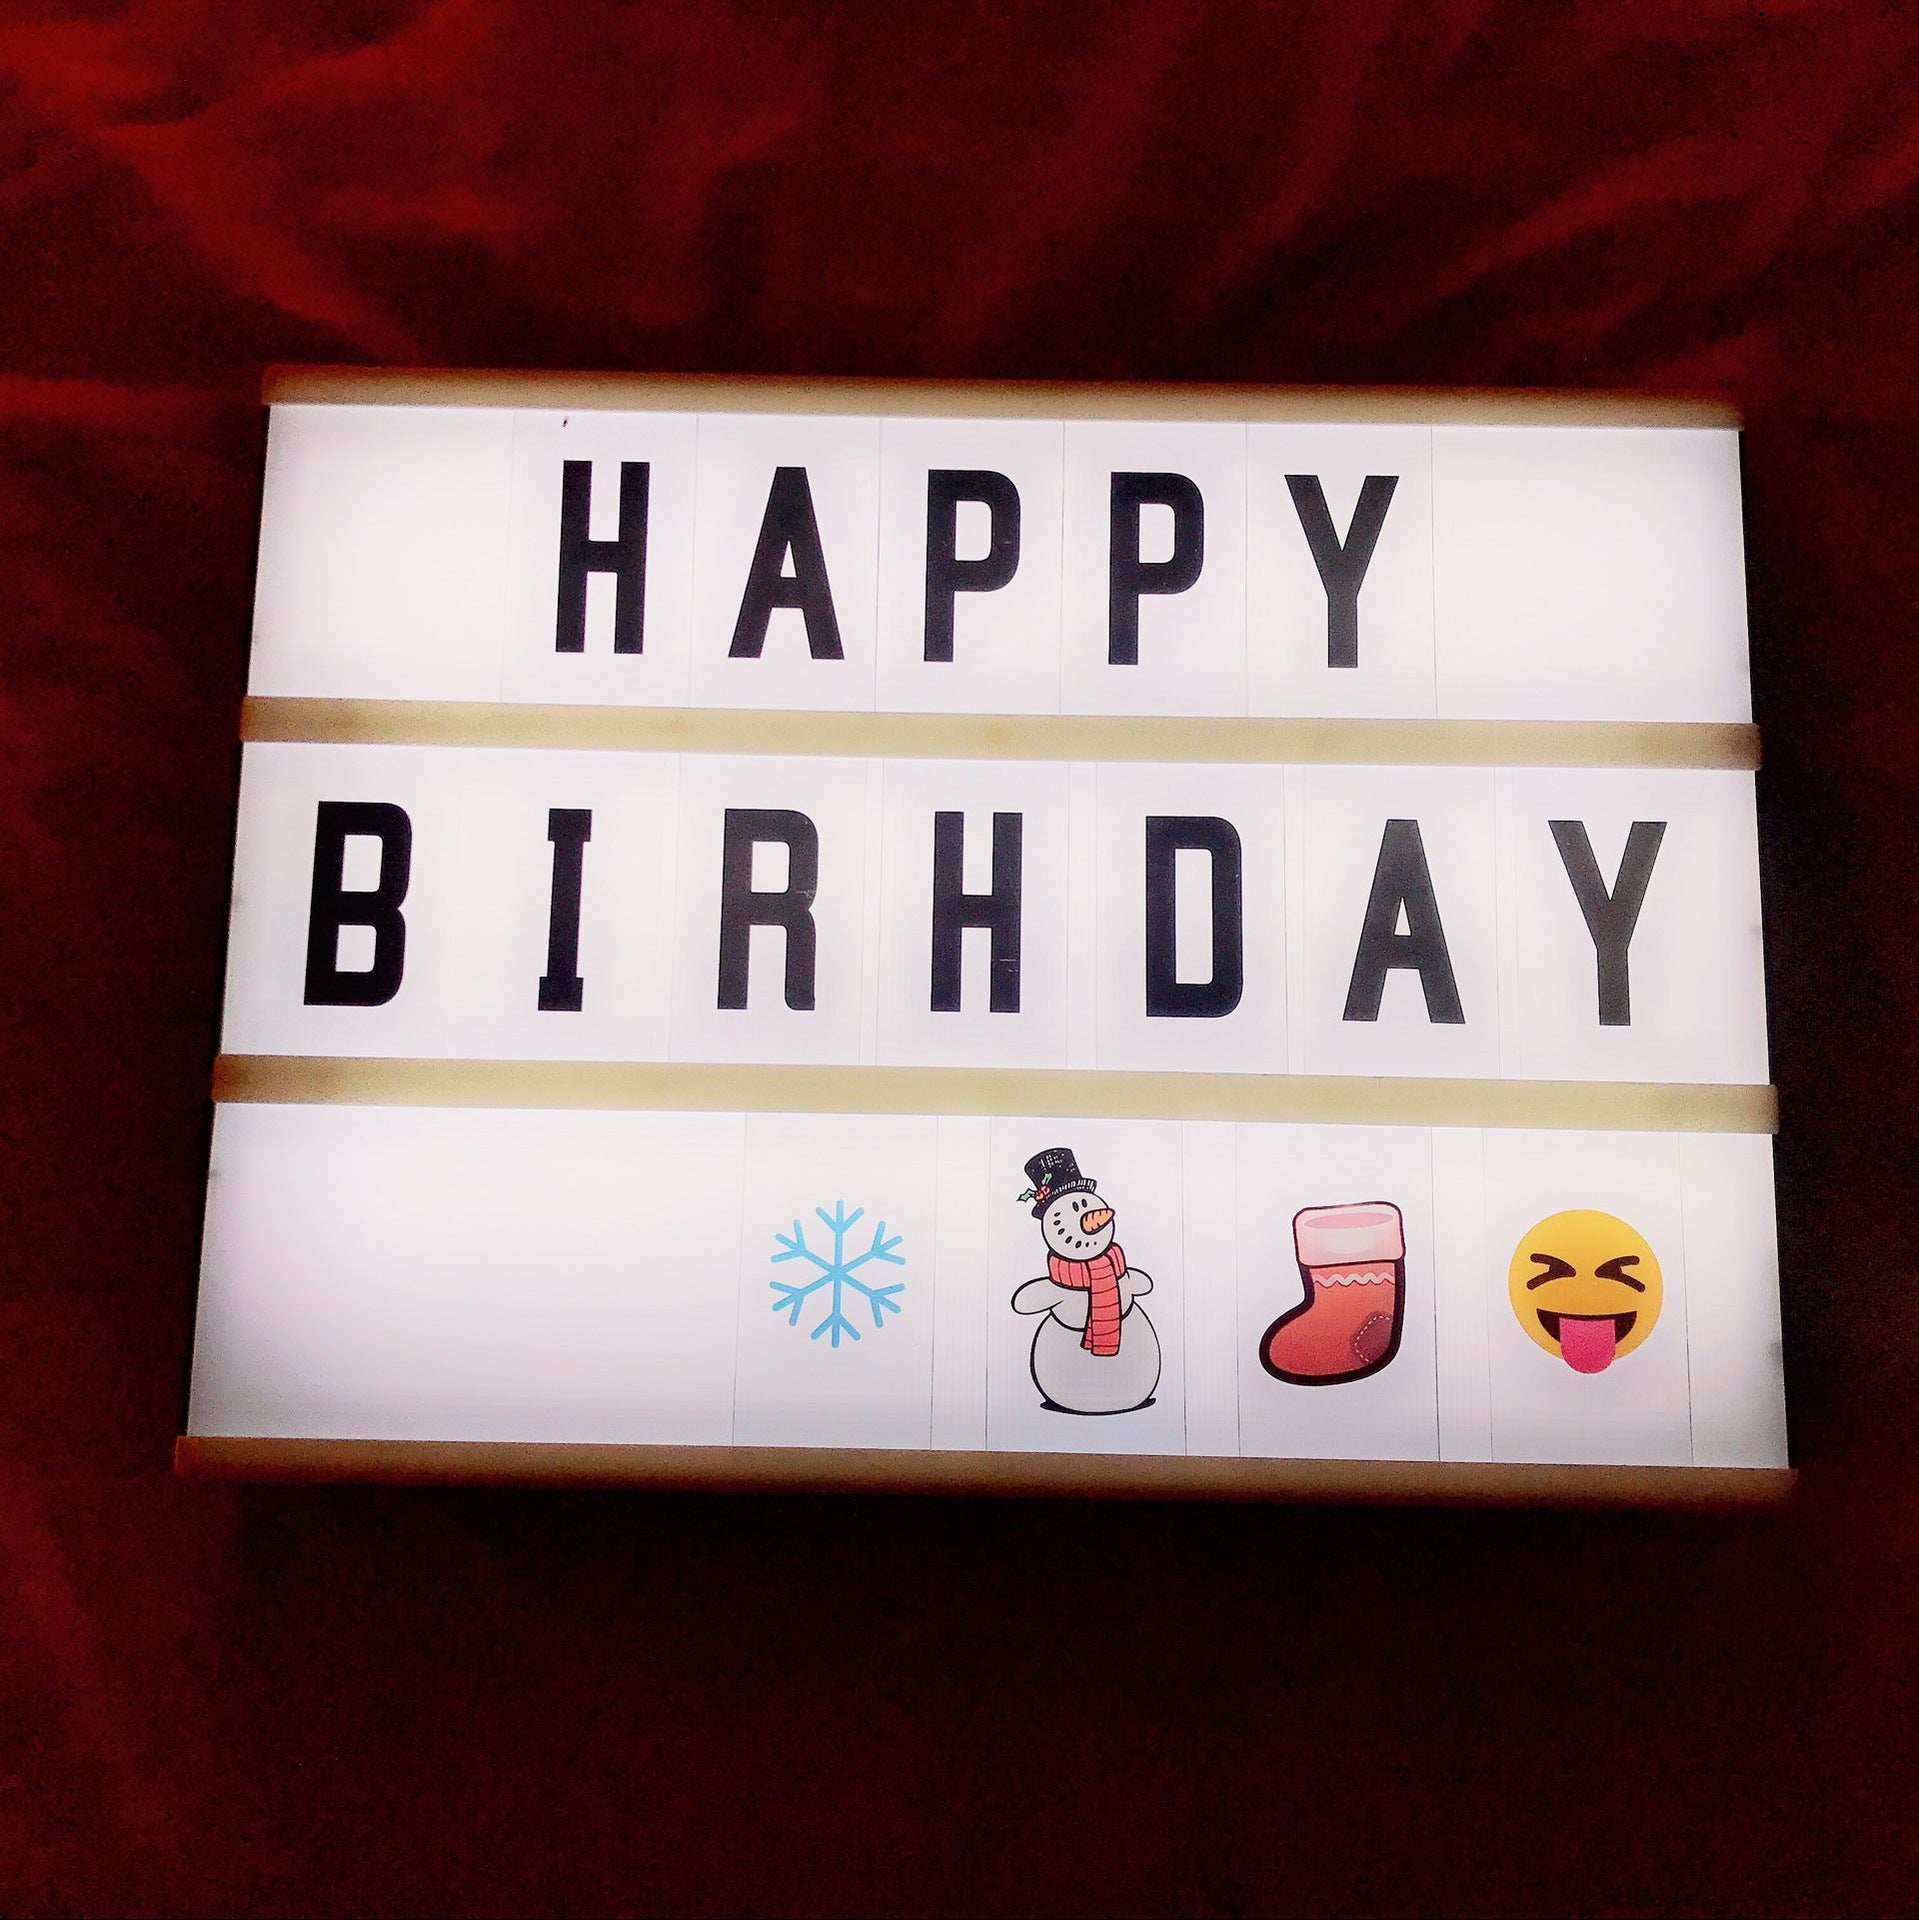 Isn elegant girl heart LED light box room decoration A4 light box 96 letters DIY group with bedroom room decoration